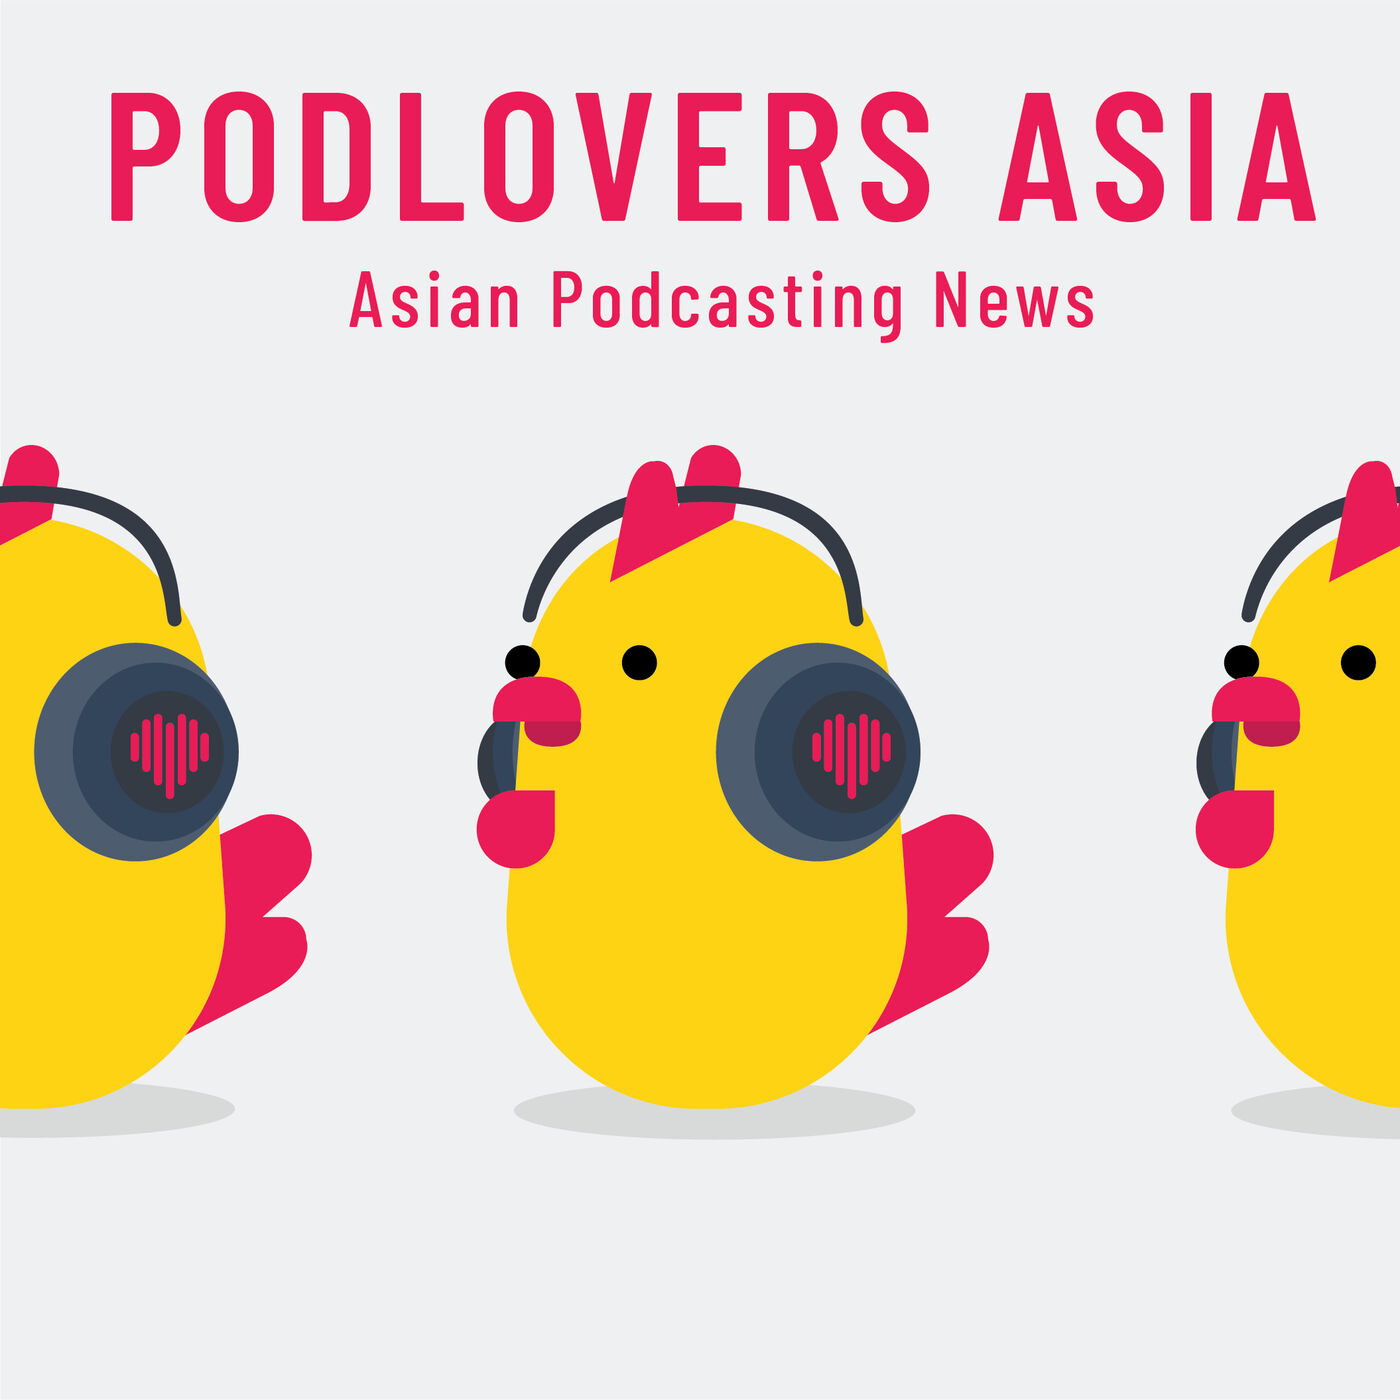 Saigoneer's Mike Tatarski covers Vietnamese culture, content curation and the Vietnamese podcasting scene